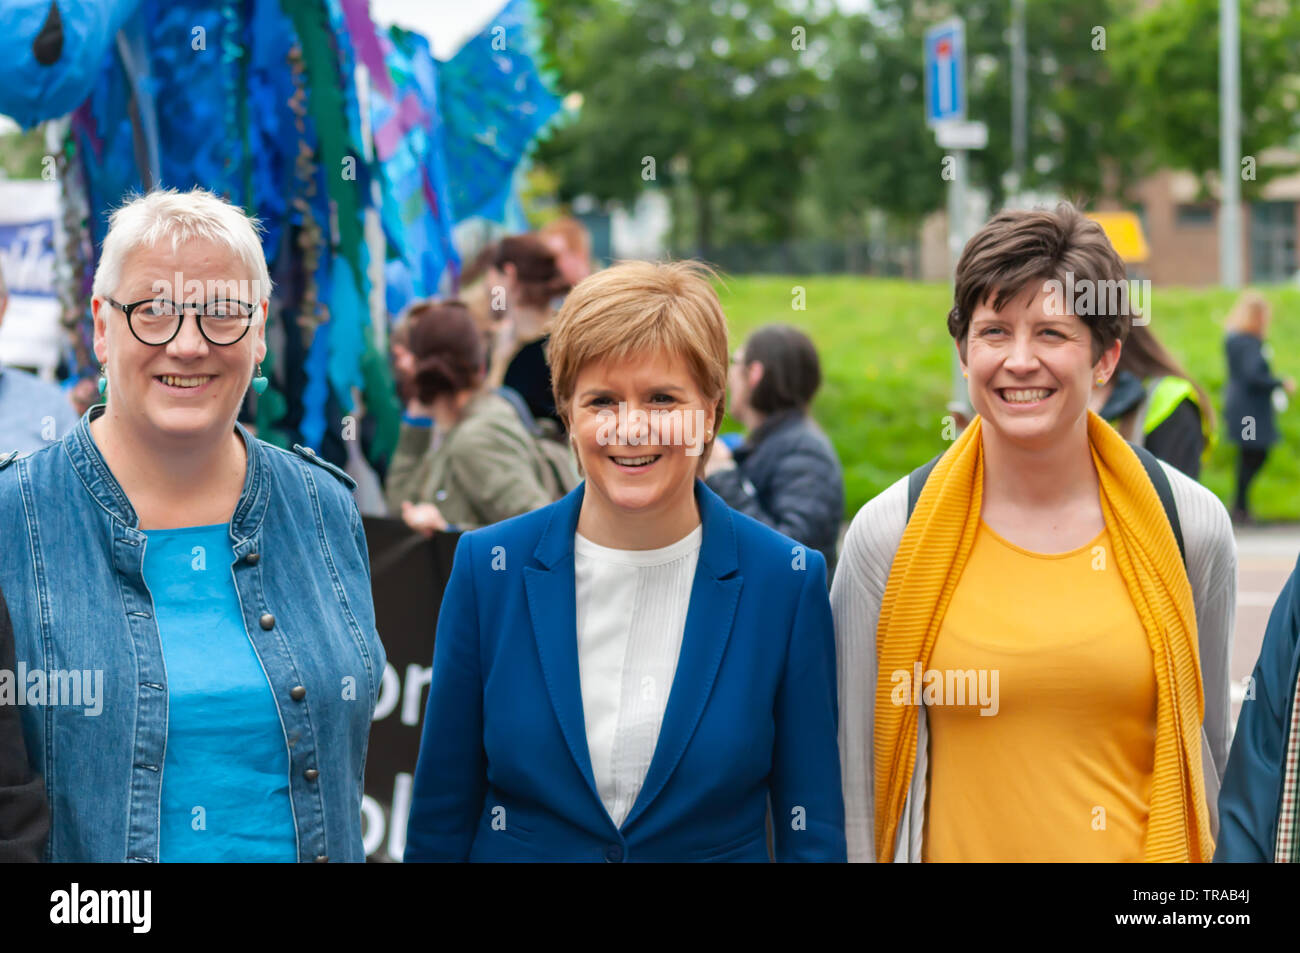 Glasgow, Scotland, UK. 1st June, 2019: Mhairi Hunter, SNP councillor for Glasgow Southside Central (left), Nicola Sturgeon MSP, the First Minister Of Scotland (middle) and Alison Thewliss MP (right) attend the annual Gorbals Fair which starts with a procession through the streets of The Gorbals. Credit: Skully/Alamy Live News Stock Photo